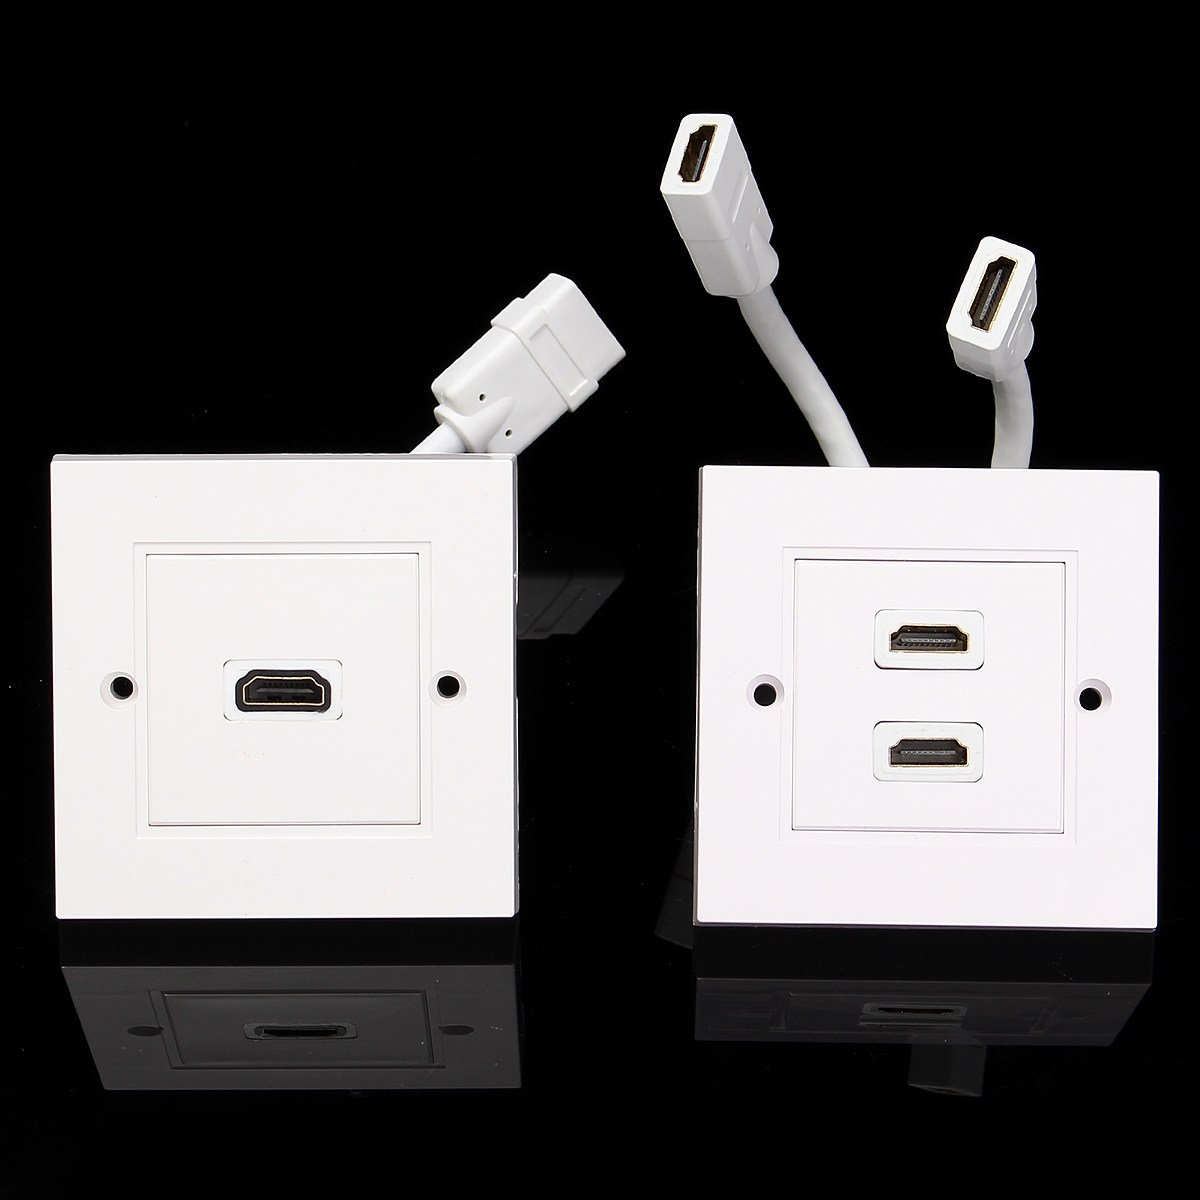 86 x 86mm HD HDMI Wall Panel UK British Single Port / Dual Port With Short Cable Video Plug Charger Electrical Socket